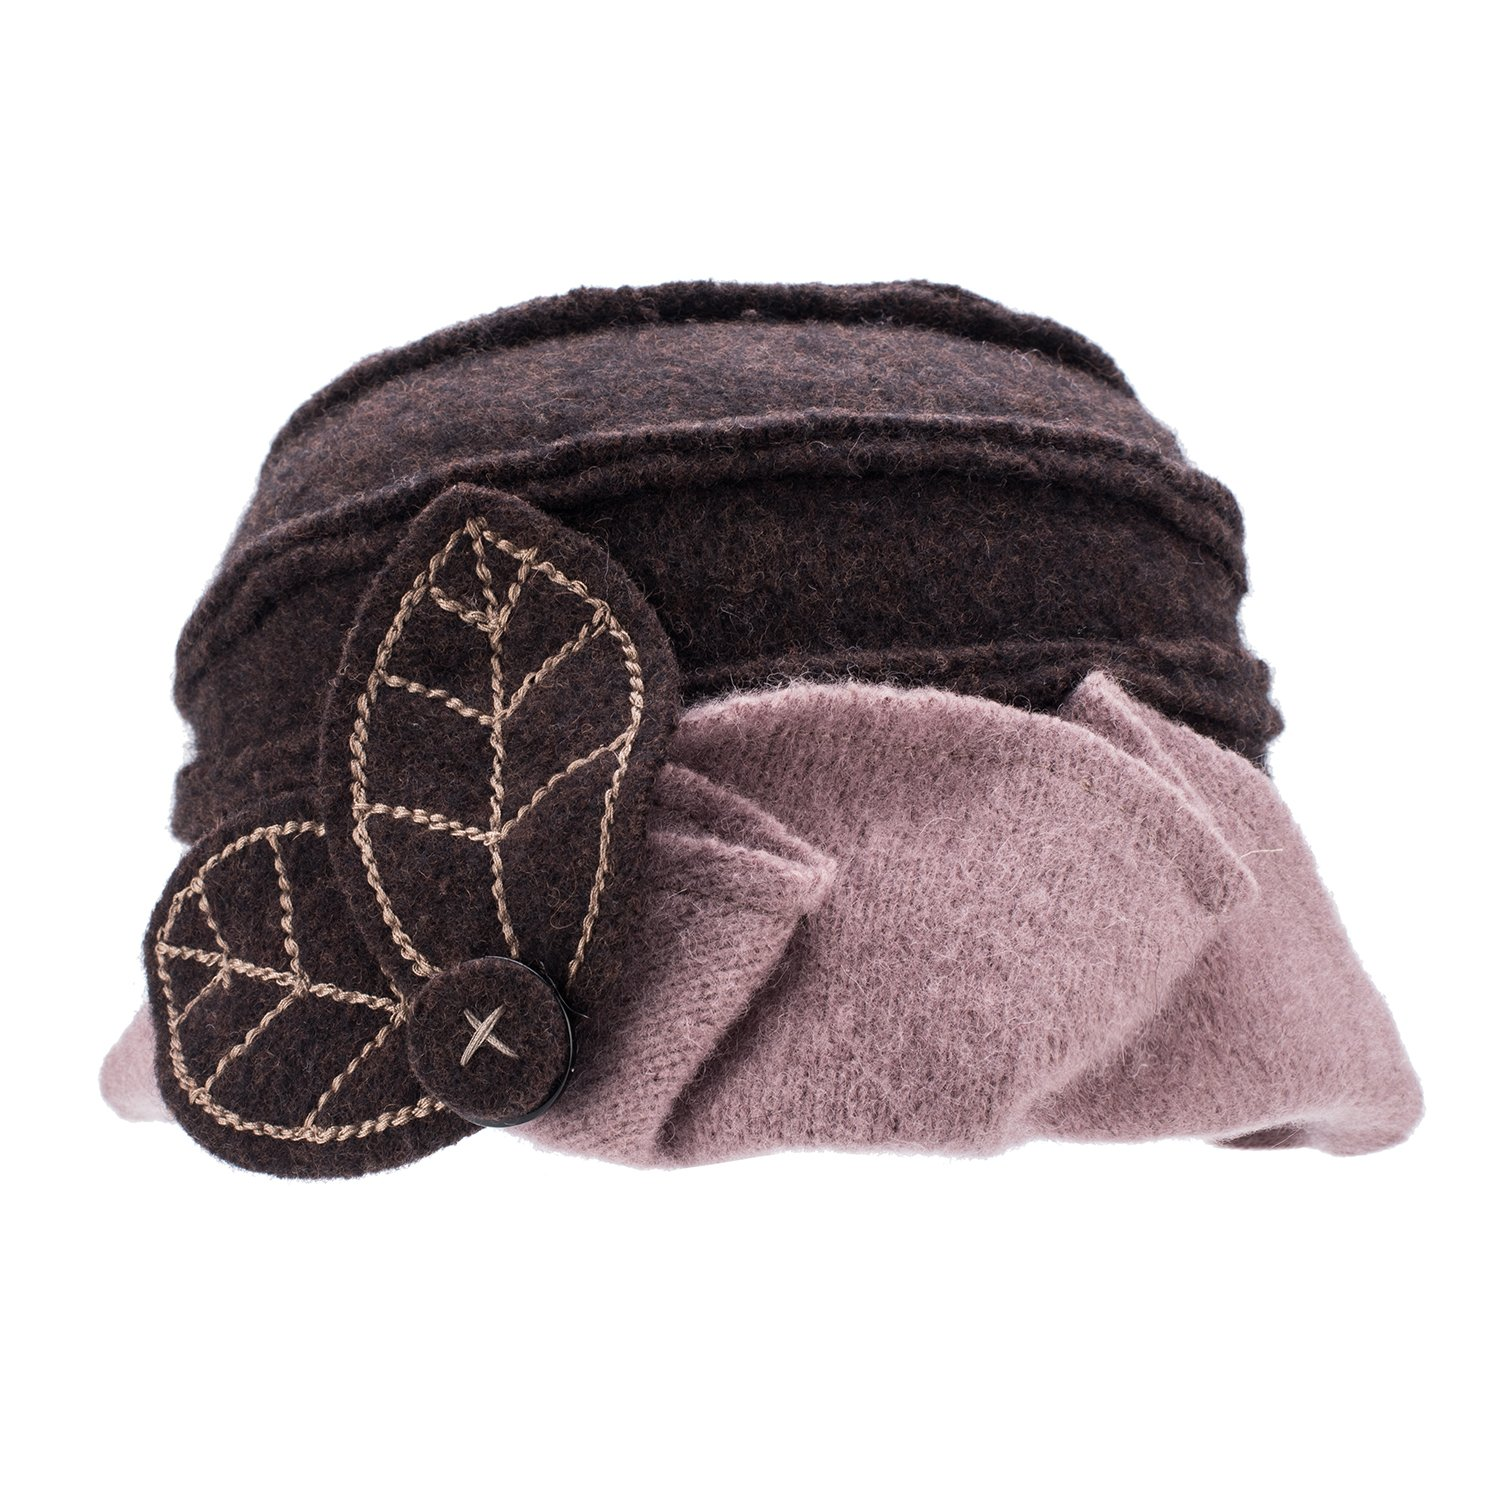 Lawliet Two-Tone Womens Ladies Winter 1920s 100% Wool Leaf Bucket Beret Cap Hat A375 (Brown Top Khaki Trim)